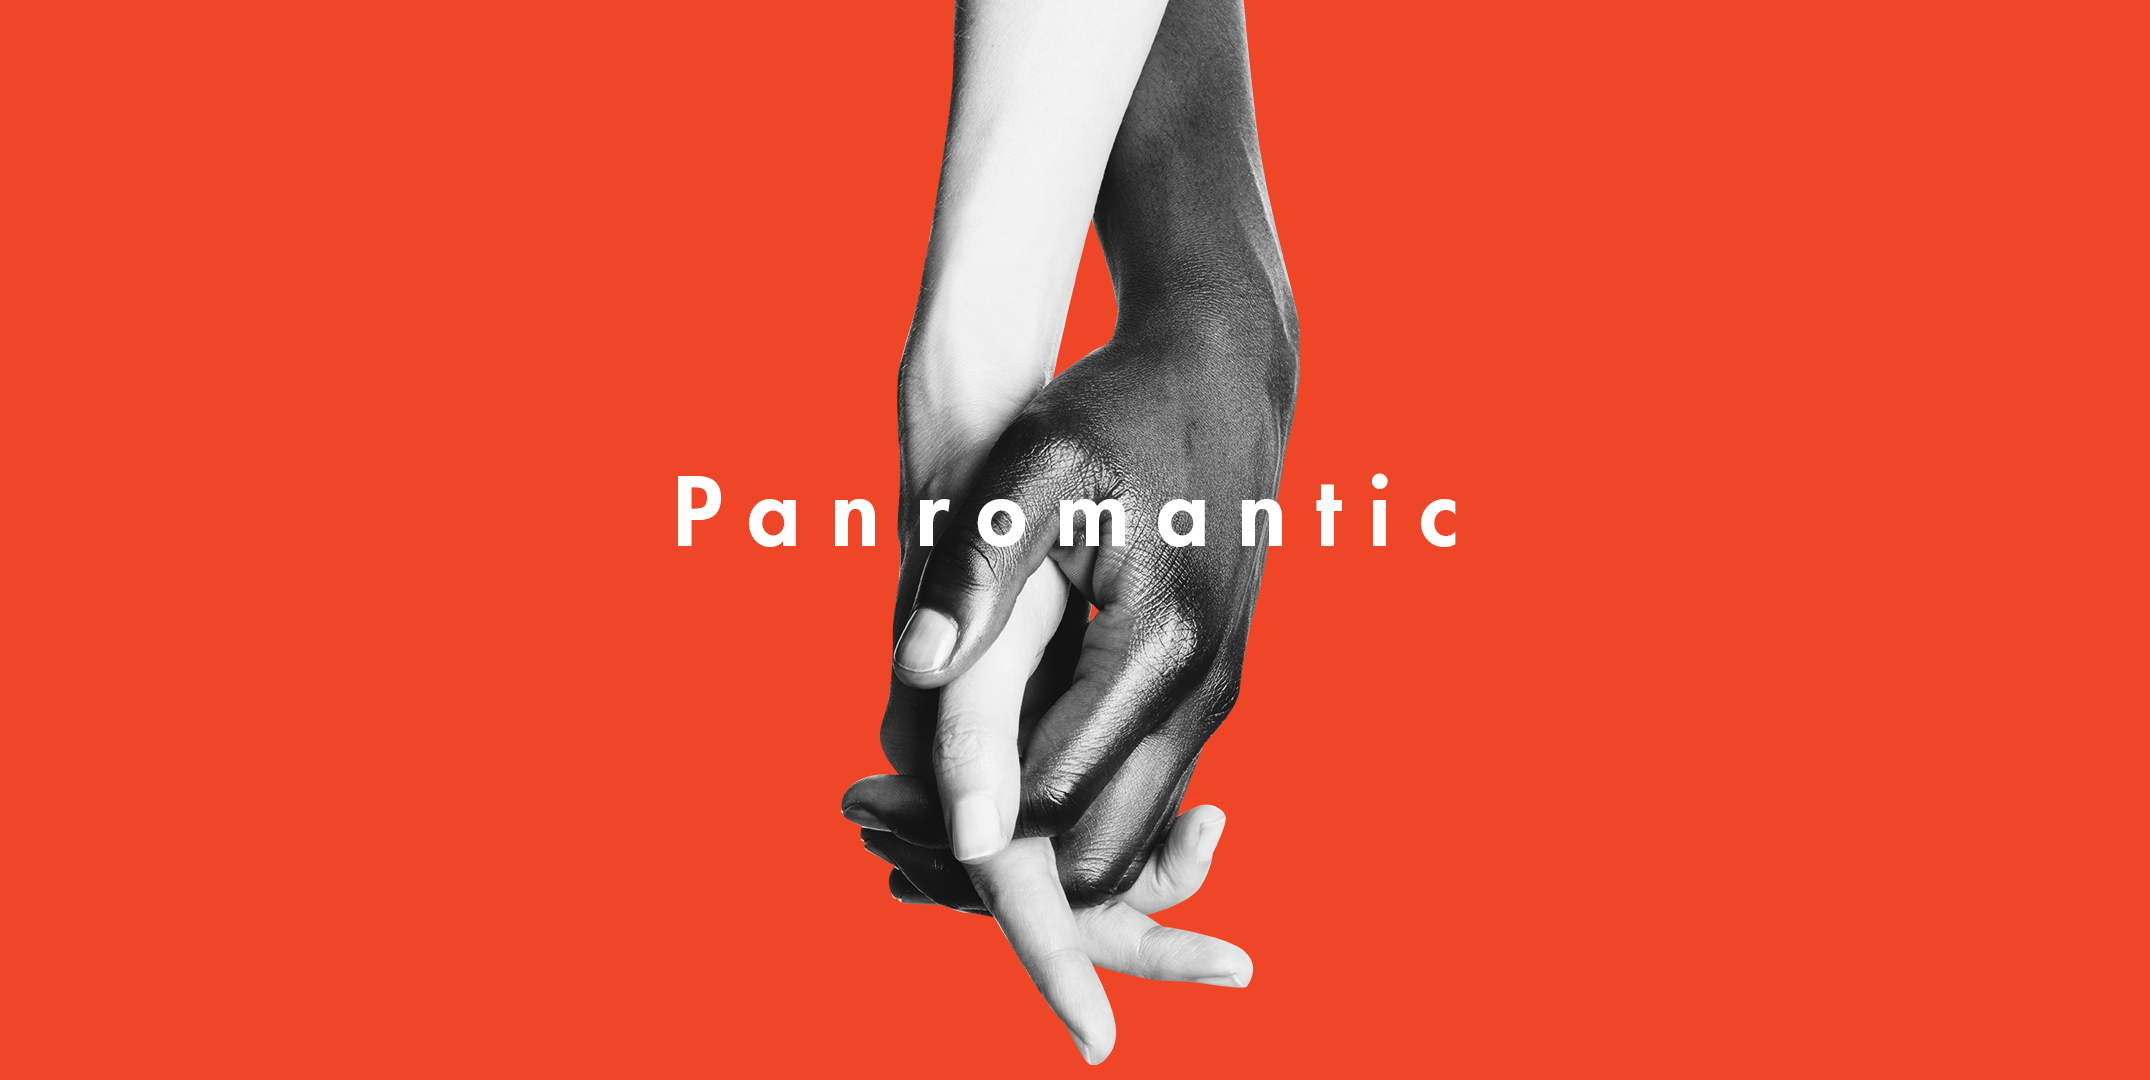 What Does It Mean to Be Panromantic?